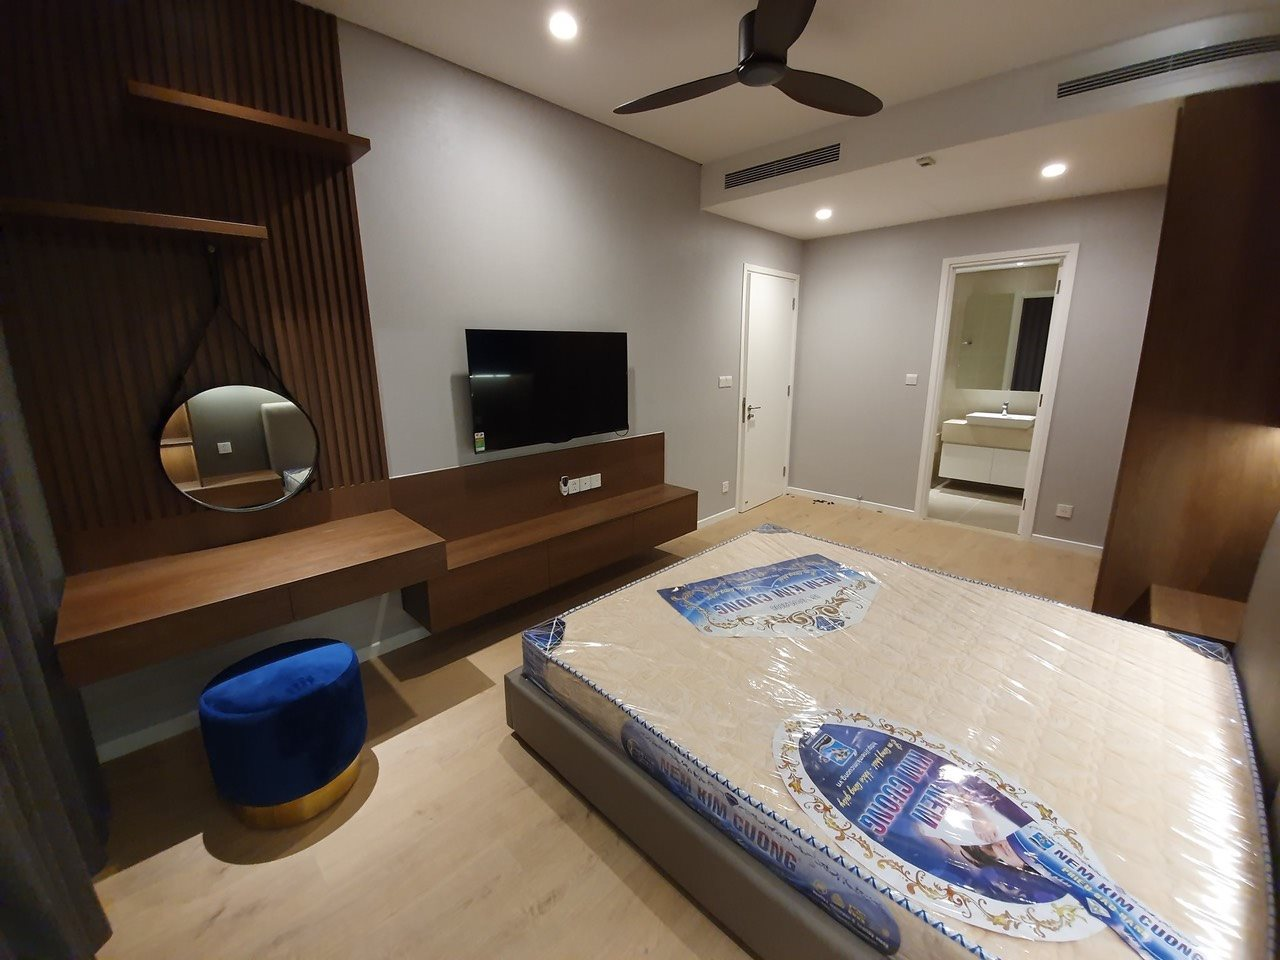 DI0933 - Diamond Island Apartment For Rent & Sale in Ho Chi Minh City - 2 bedroom